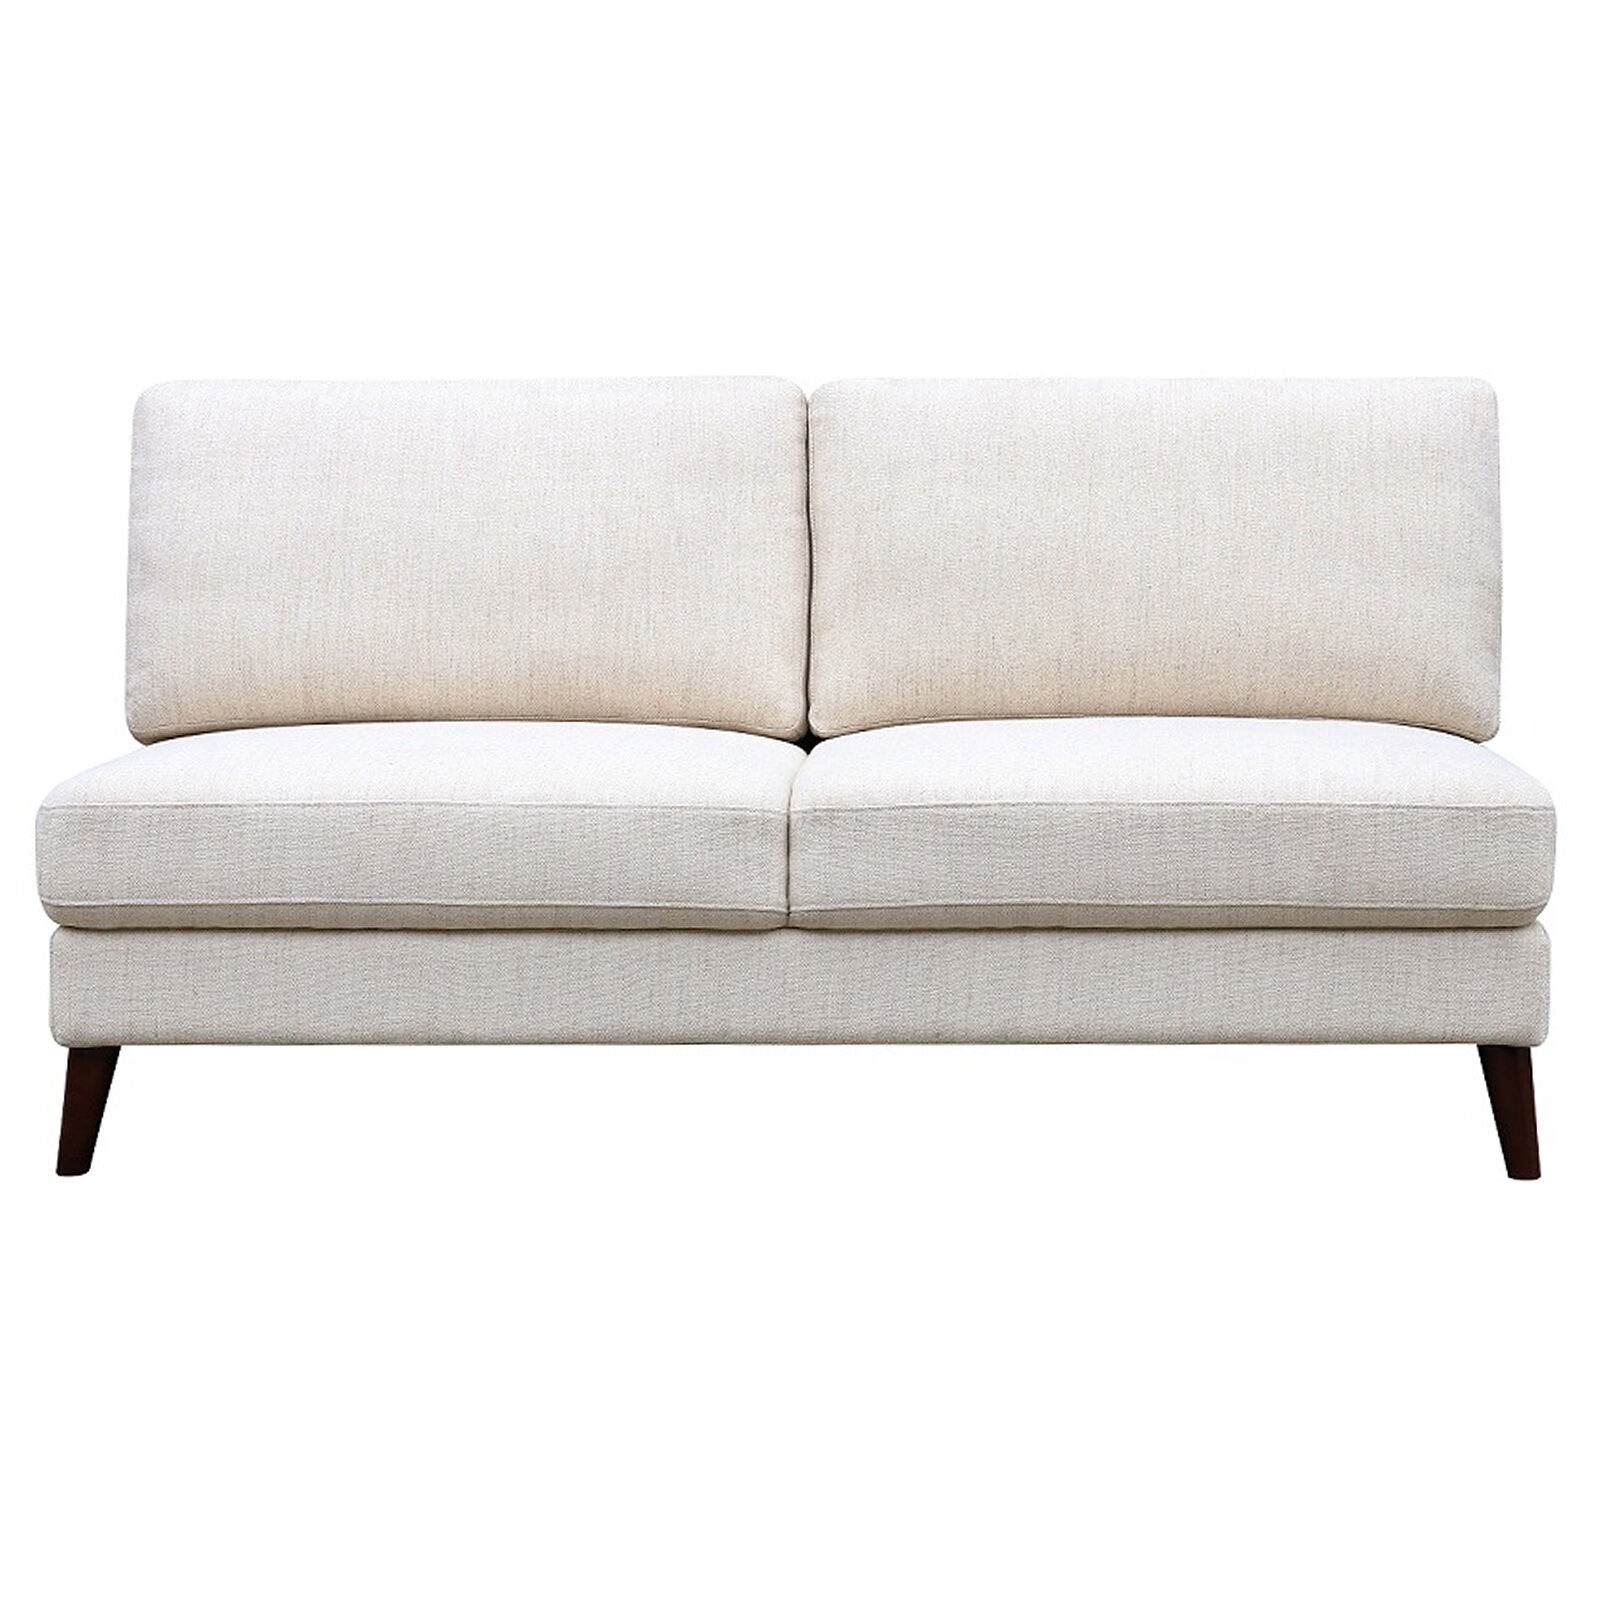 barton chair accessories cover rental houston modern armless sofa at home